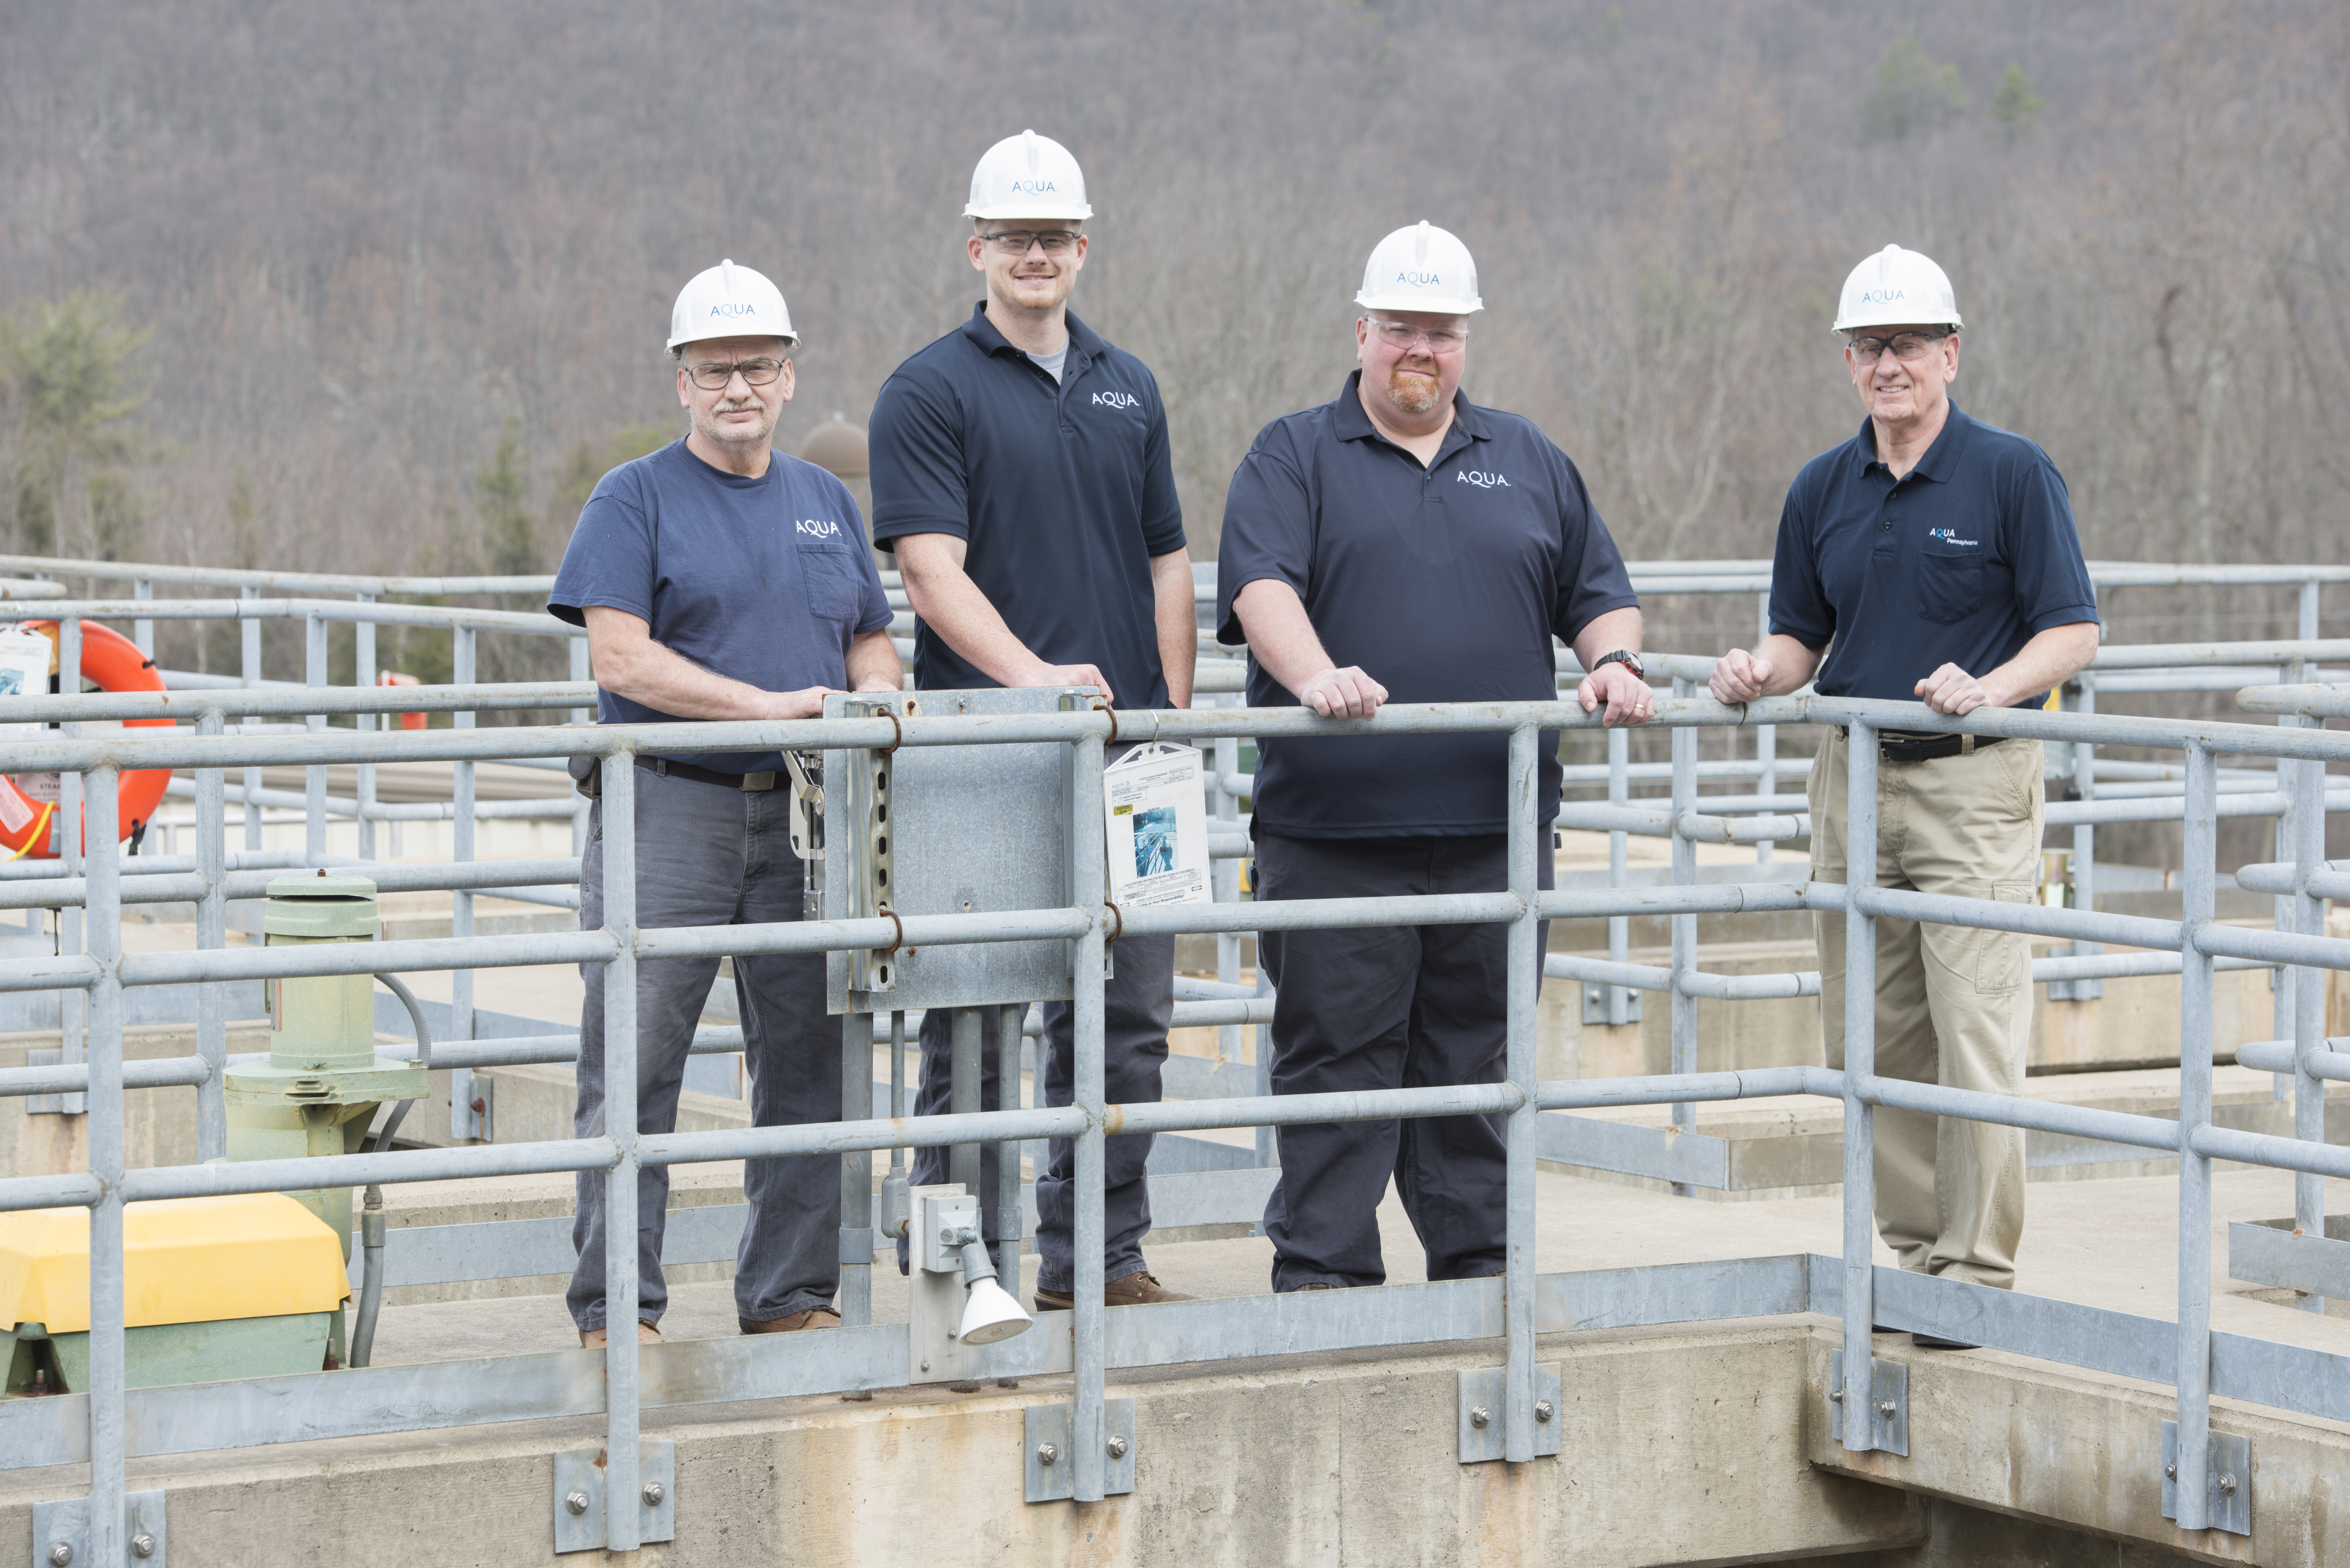 Aqua Pennsylvania's Roaring Creek earned the water treatment plant team Partnership for Safe Water's Phase IV President's Award, one of the highest honors given by the organization. The Roaring Creek operations team includes L to R: Lead Maintenance Operator Gary Hampton, maintenance operators Dan Ogden and Terry Weidner, and Plant Superintendent Rich Kotwica. Not pictured are maintenance operators Jeremy Nicodemus, Bryan Yagel, Aaron Tom and Mike Budwash (Photo: Business Wire)